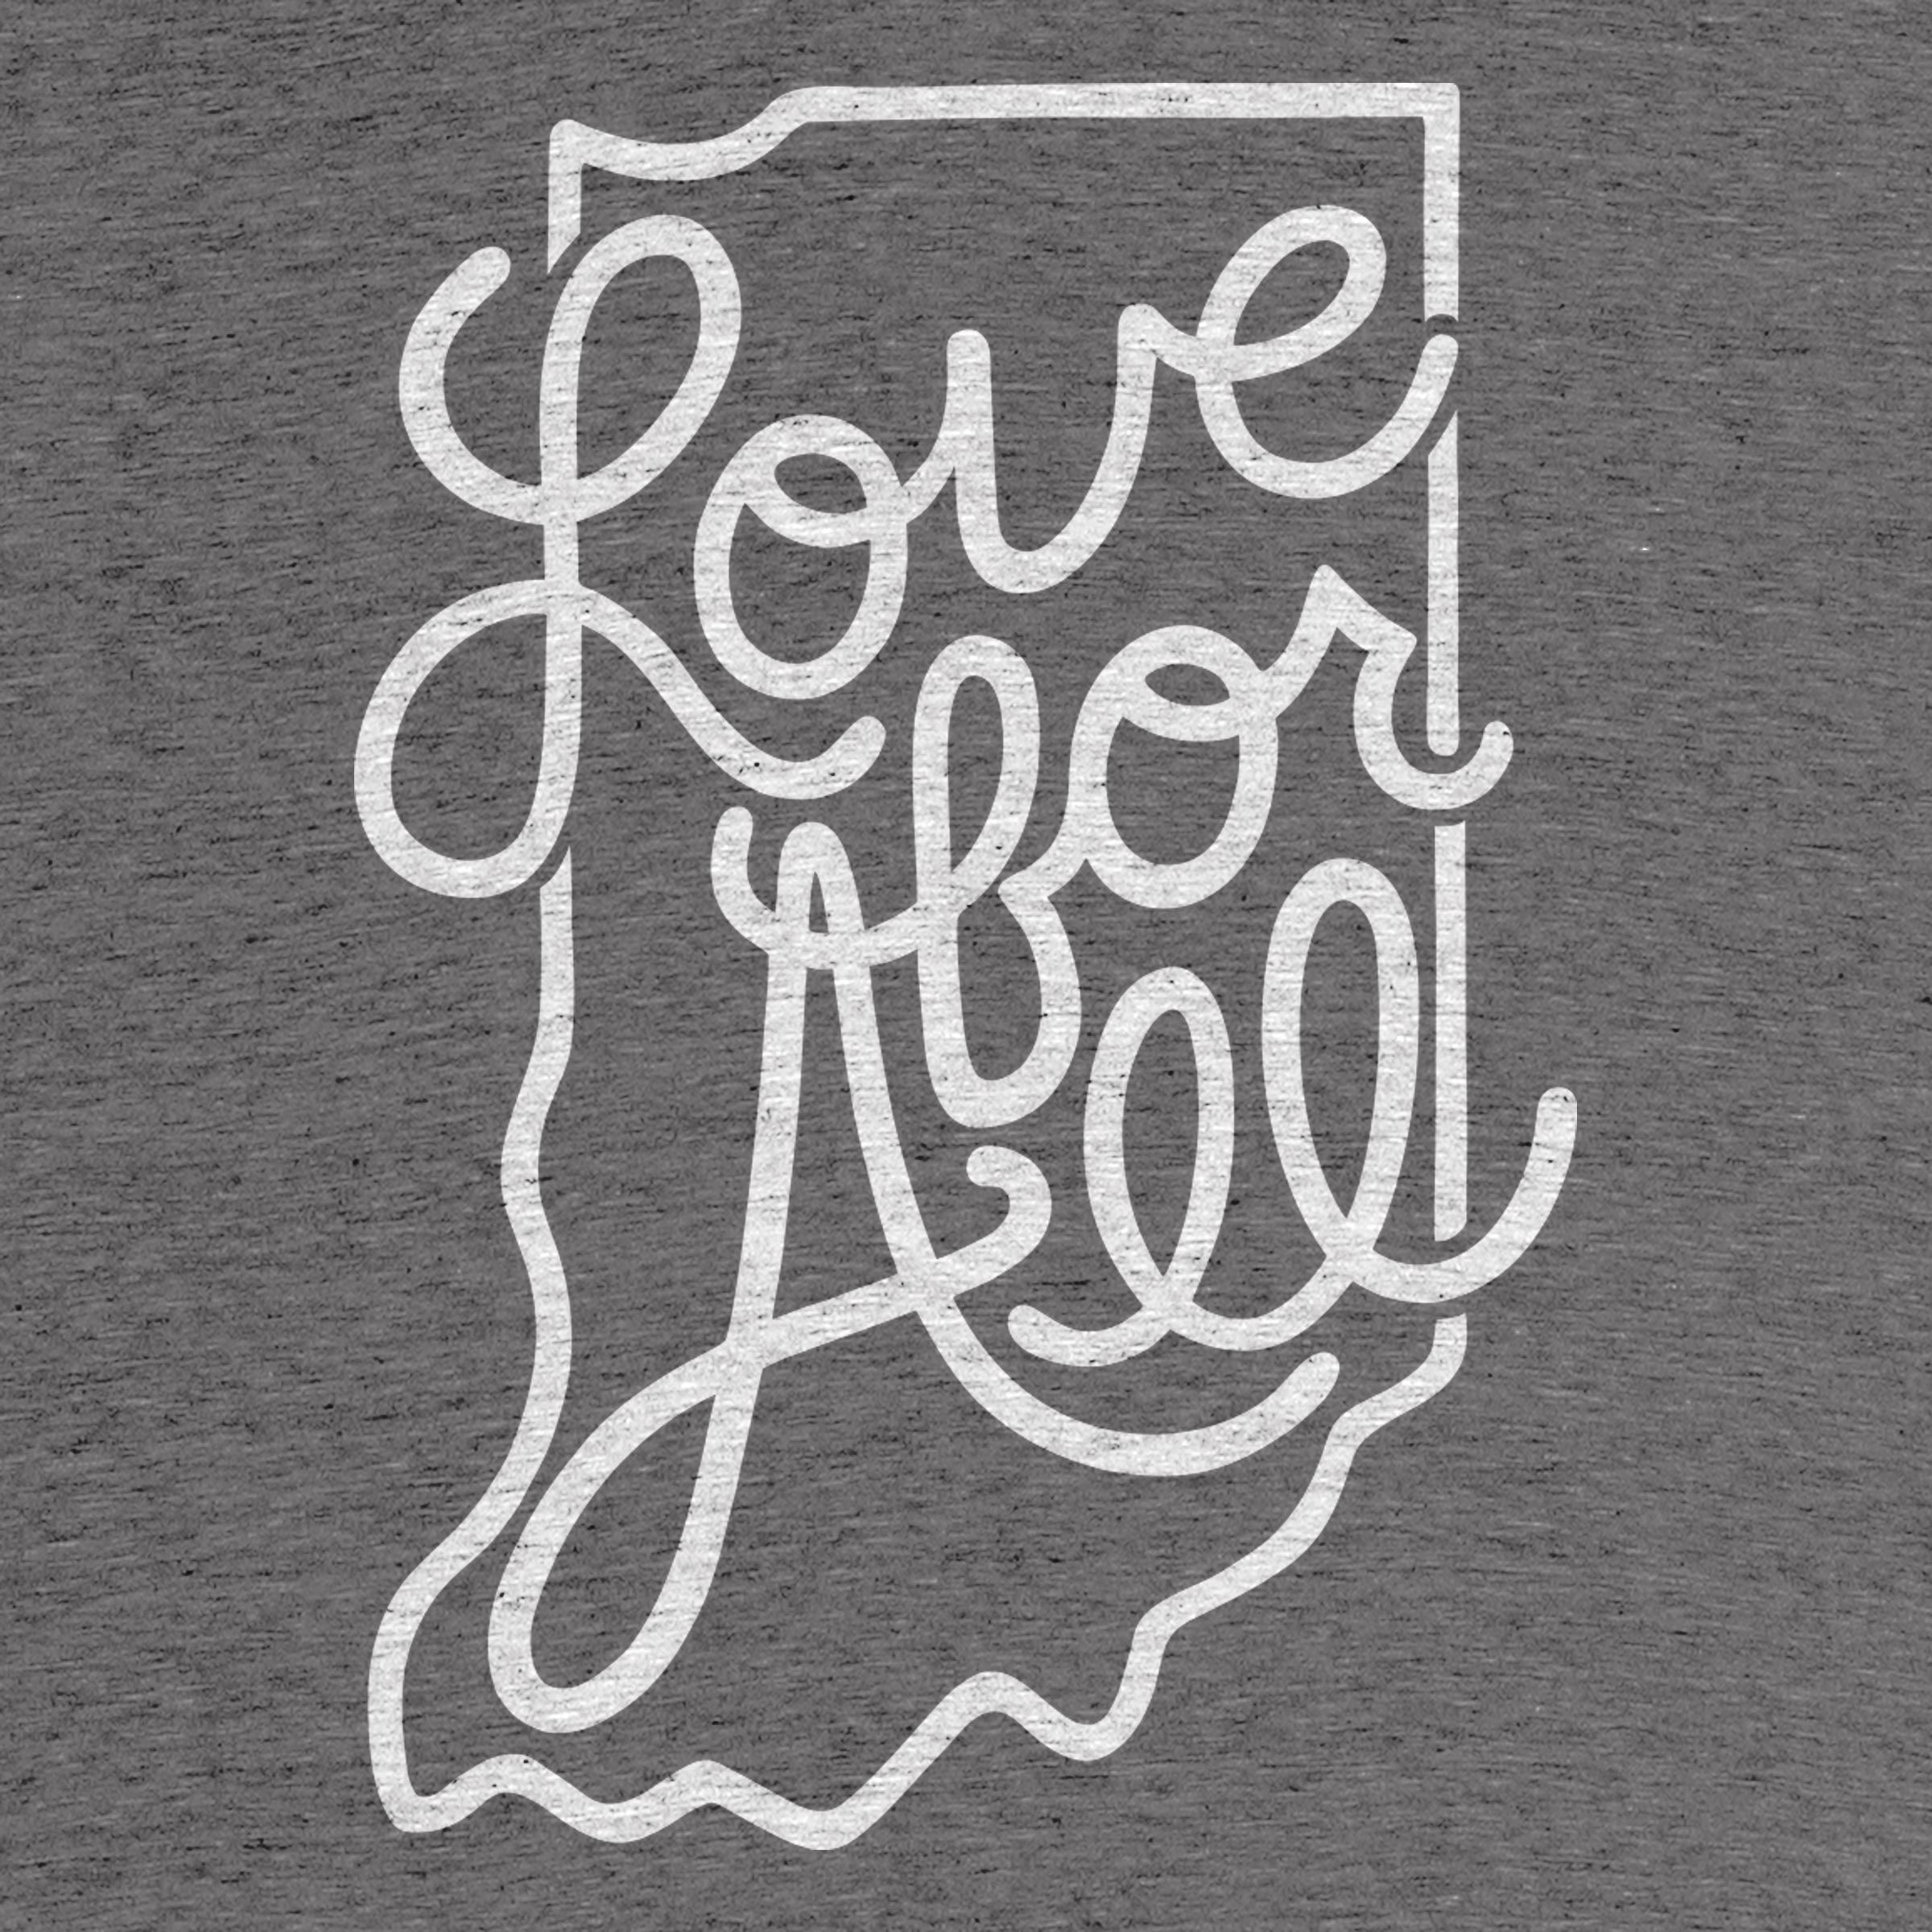 Indy Love for All